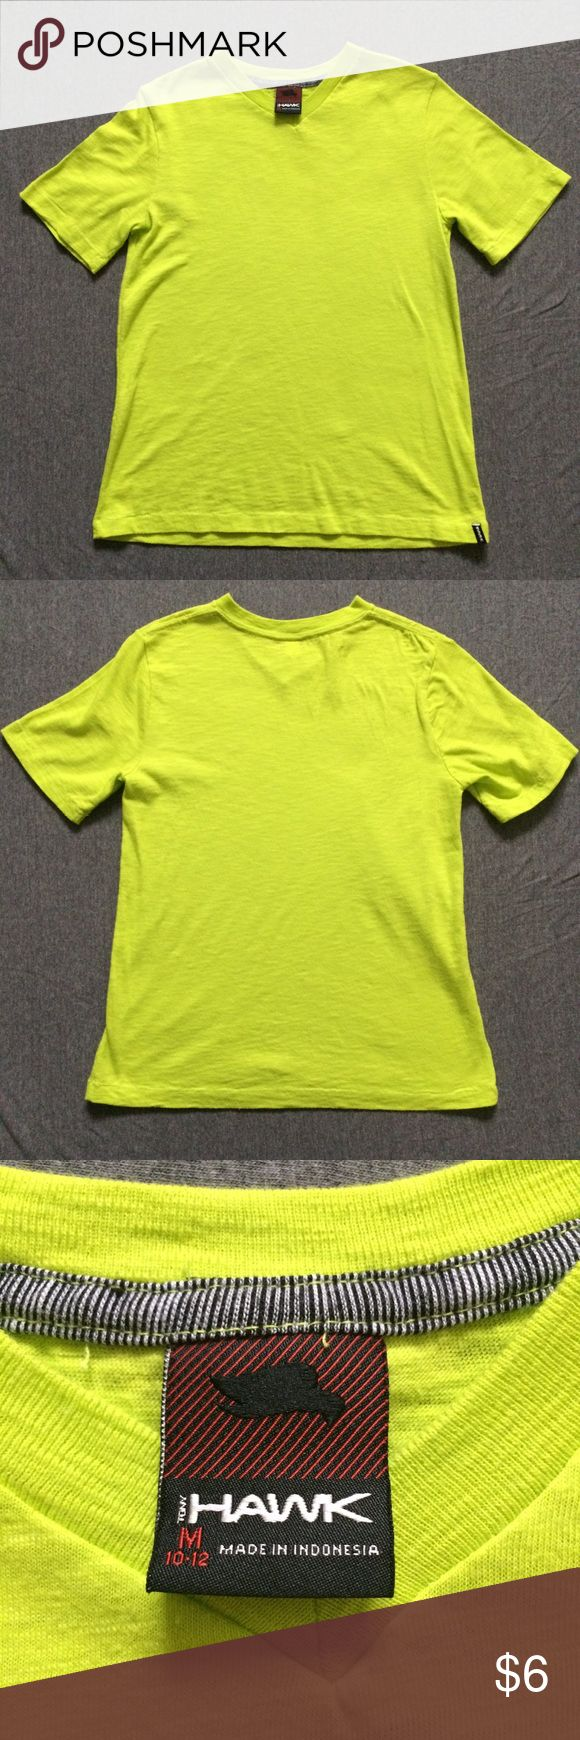 TONY HAWK • Green Yellow Tee • M (10/12) Brand: Tony Hawk Size: Medium 10/12 Color: Green Yellow Condition: Excellent, has a very very tiny hole on right sleeve seam (shown in picture) Tony Hawk Shirts & Tops Tees - Short Sleeve